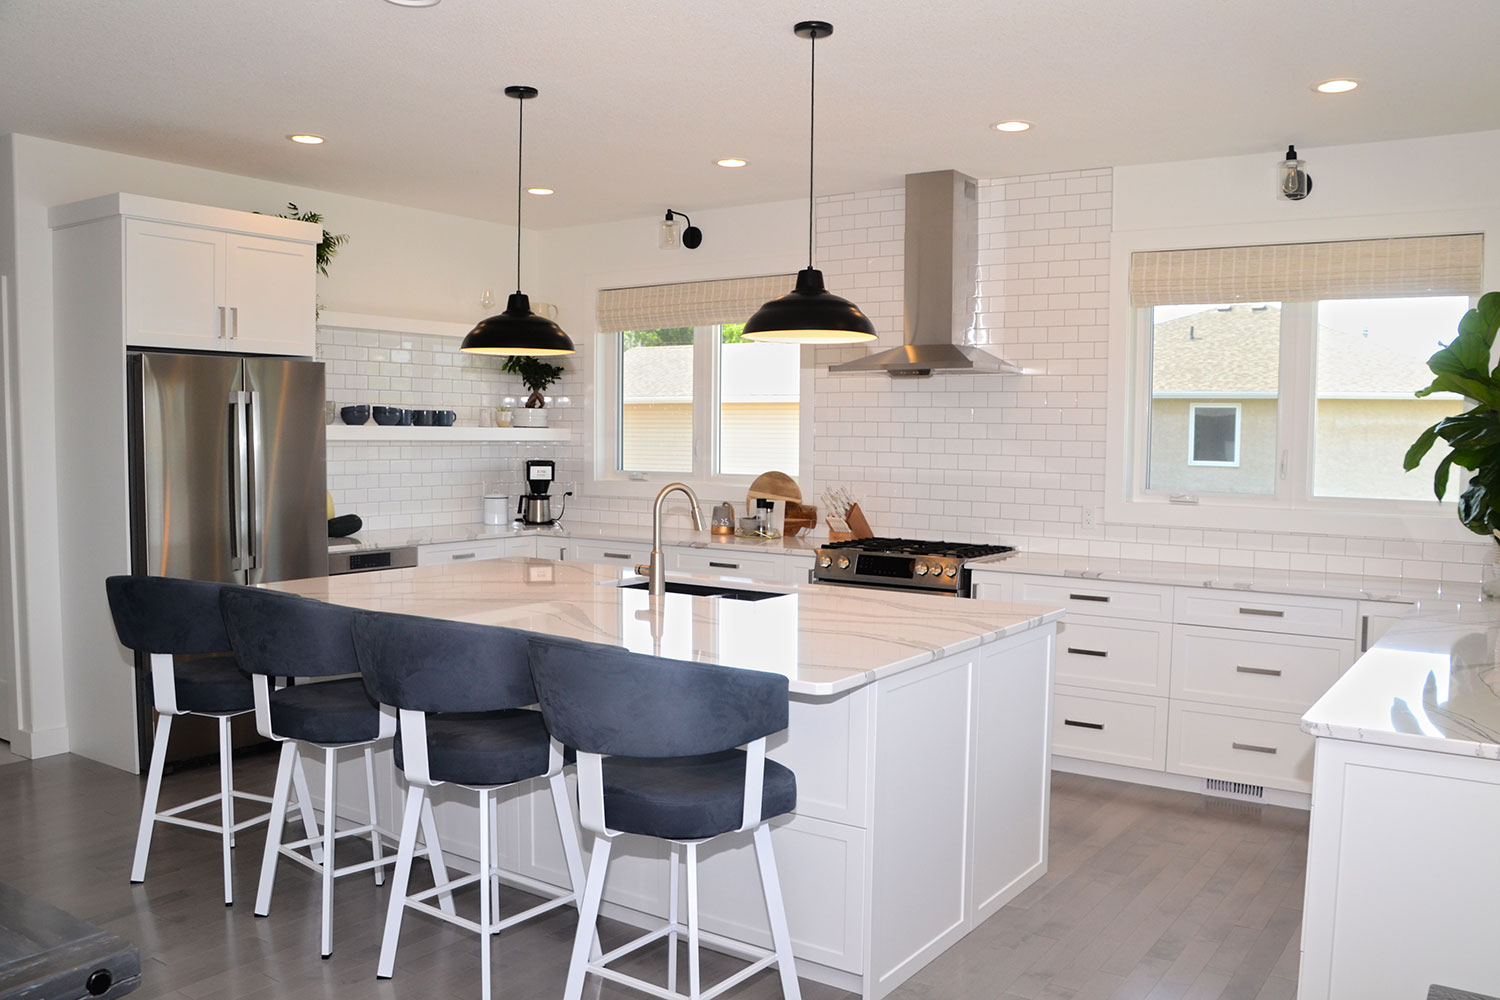 Painted Kitchen Cabinets Hanover Cabinets Moose Jaw Regina